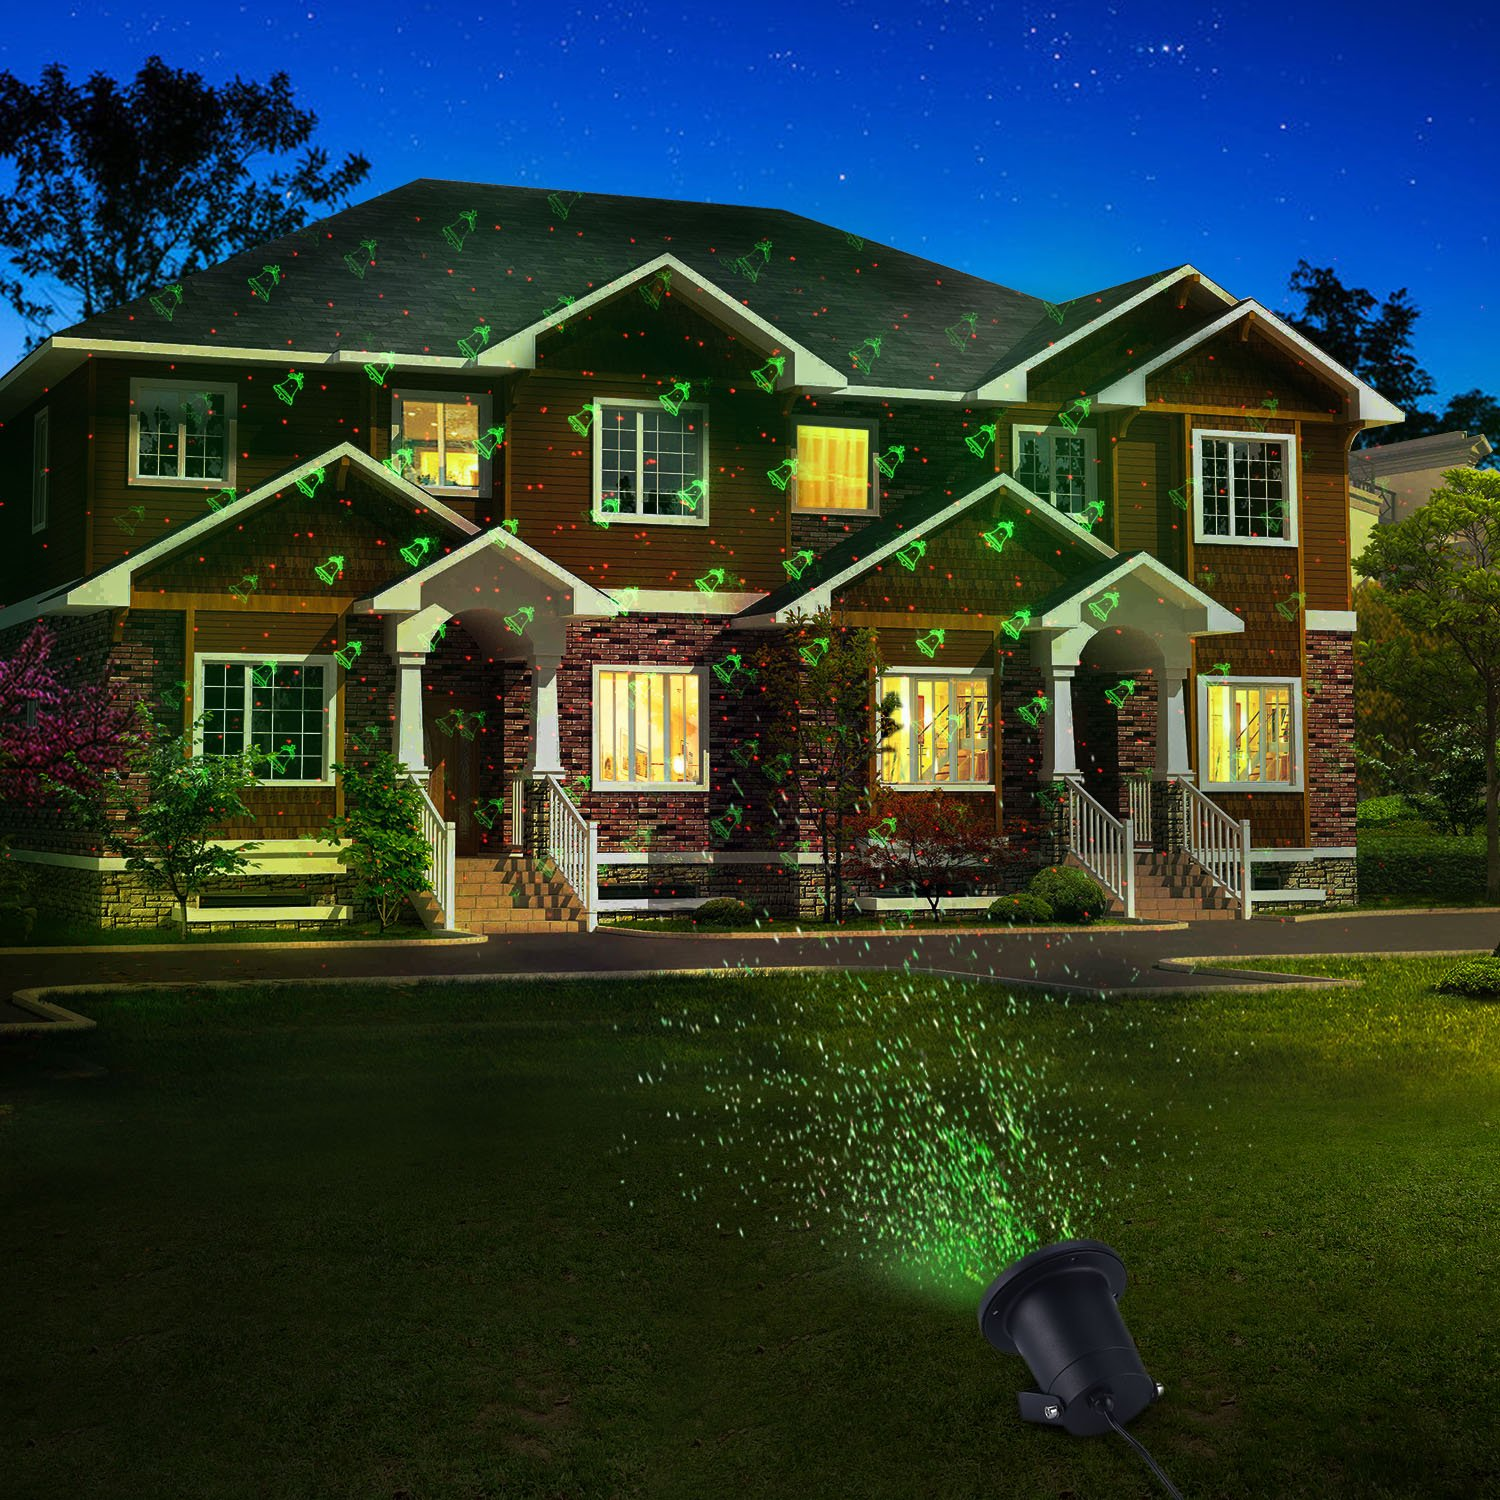 Amazoncom White Snowflake Projector Waterproof Outdoor Christmas Lights Led Laser